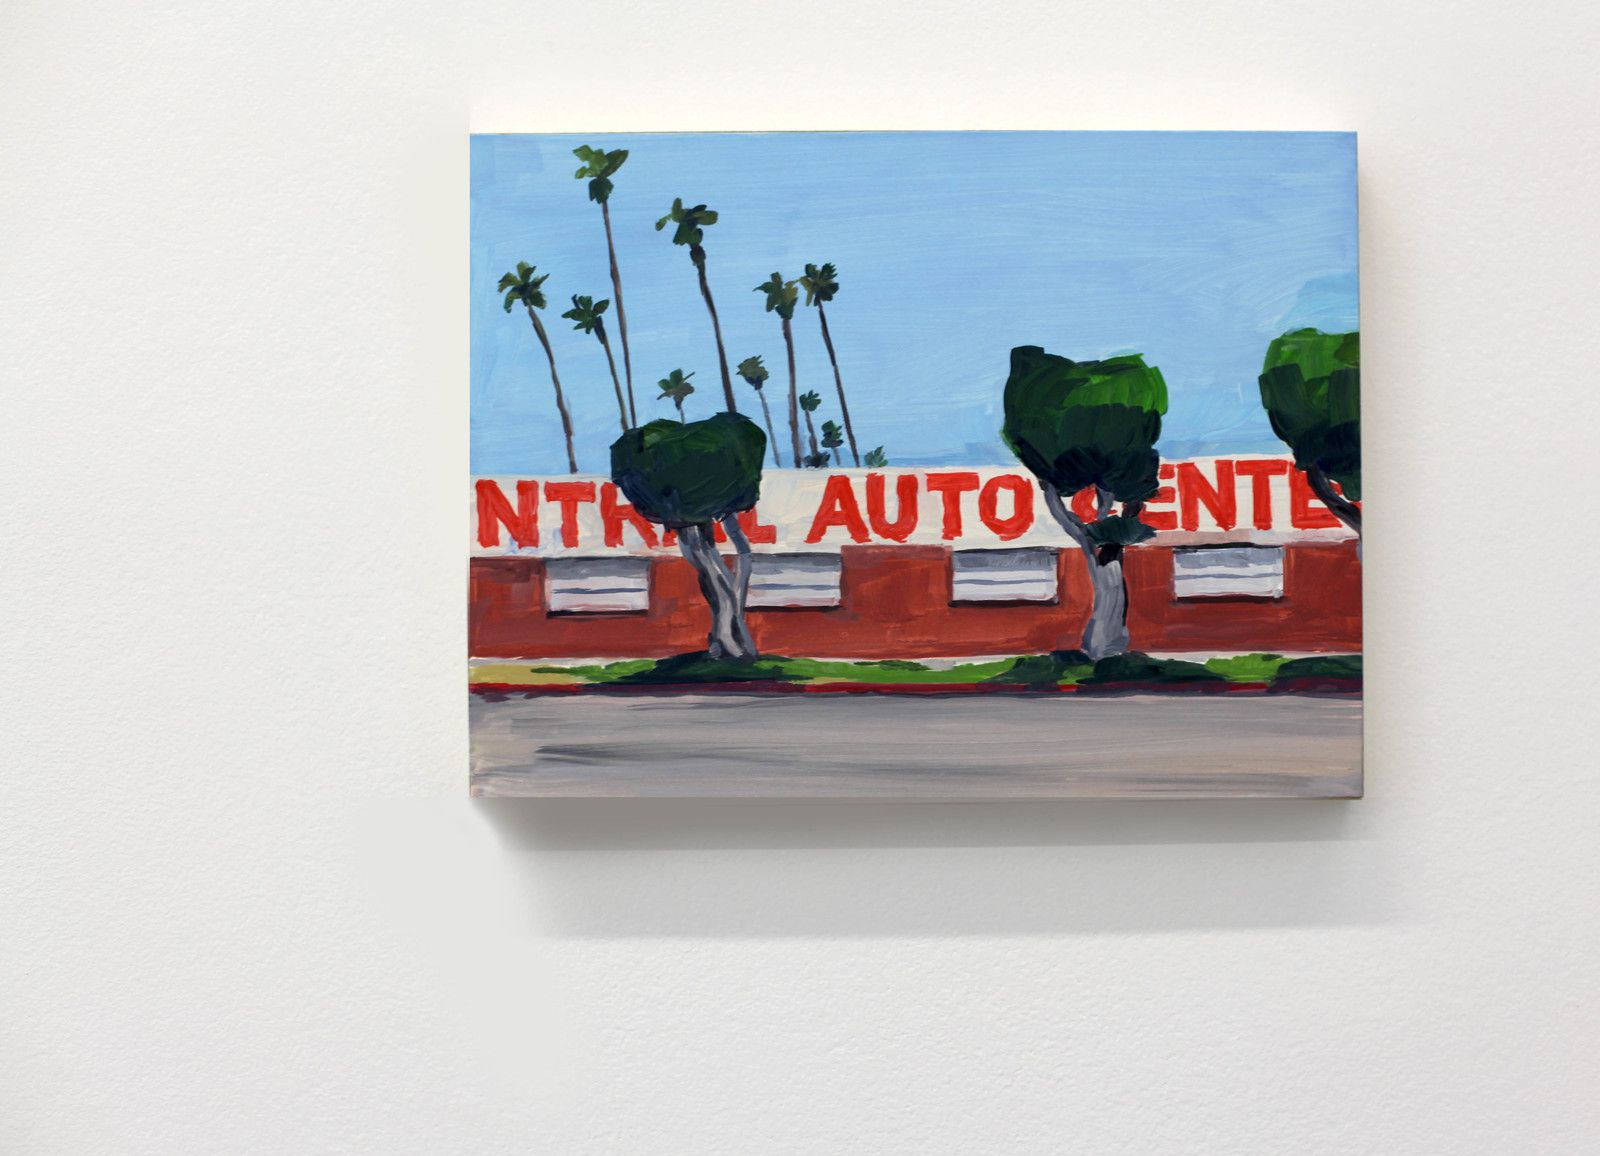 """Auto Center"", 2019 de Jean Philippe DELHOMME - Courtesy Galerie Perrotin © Photo Éric Simon"